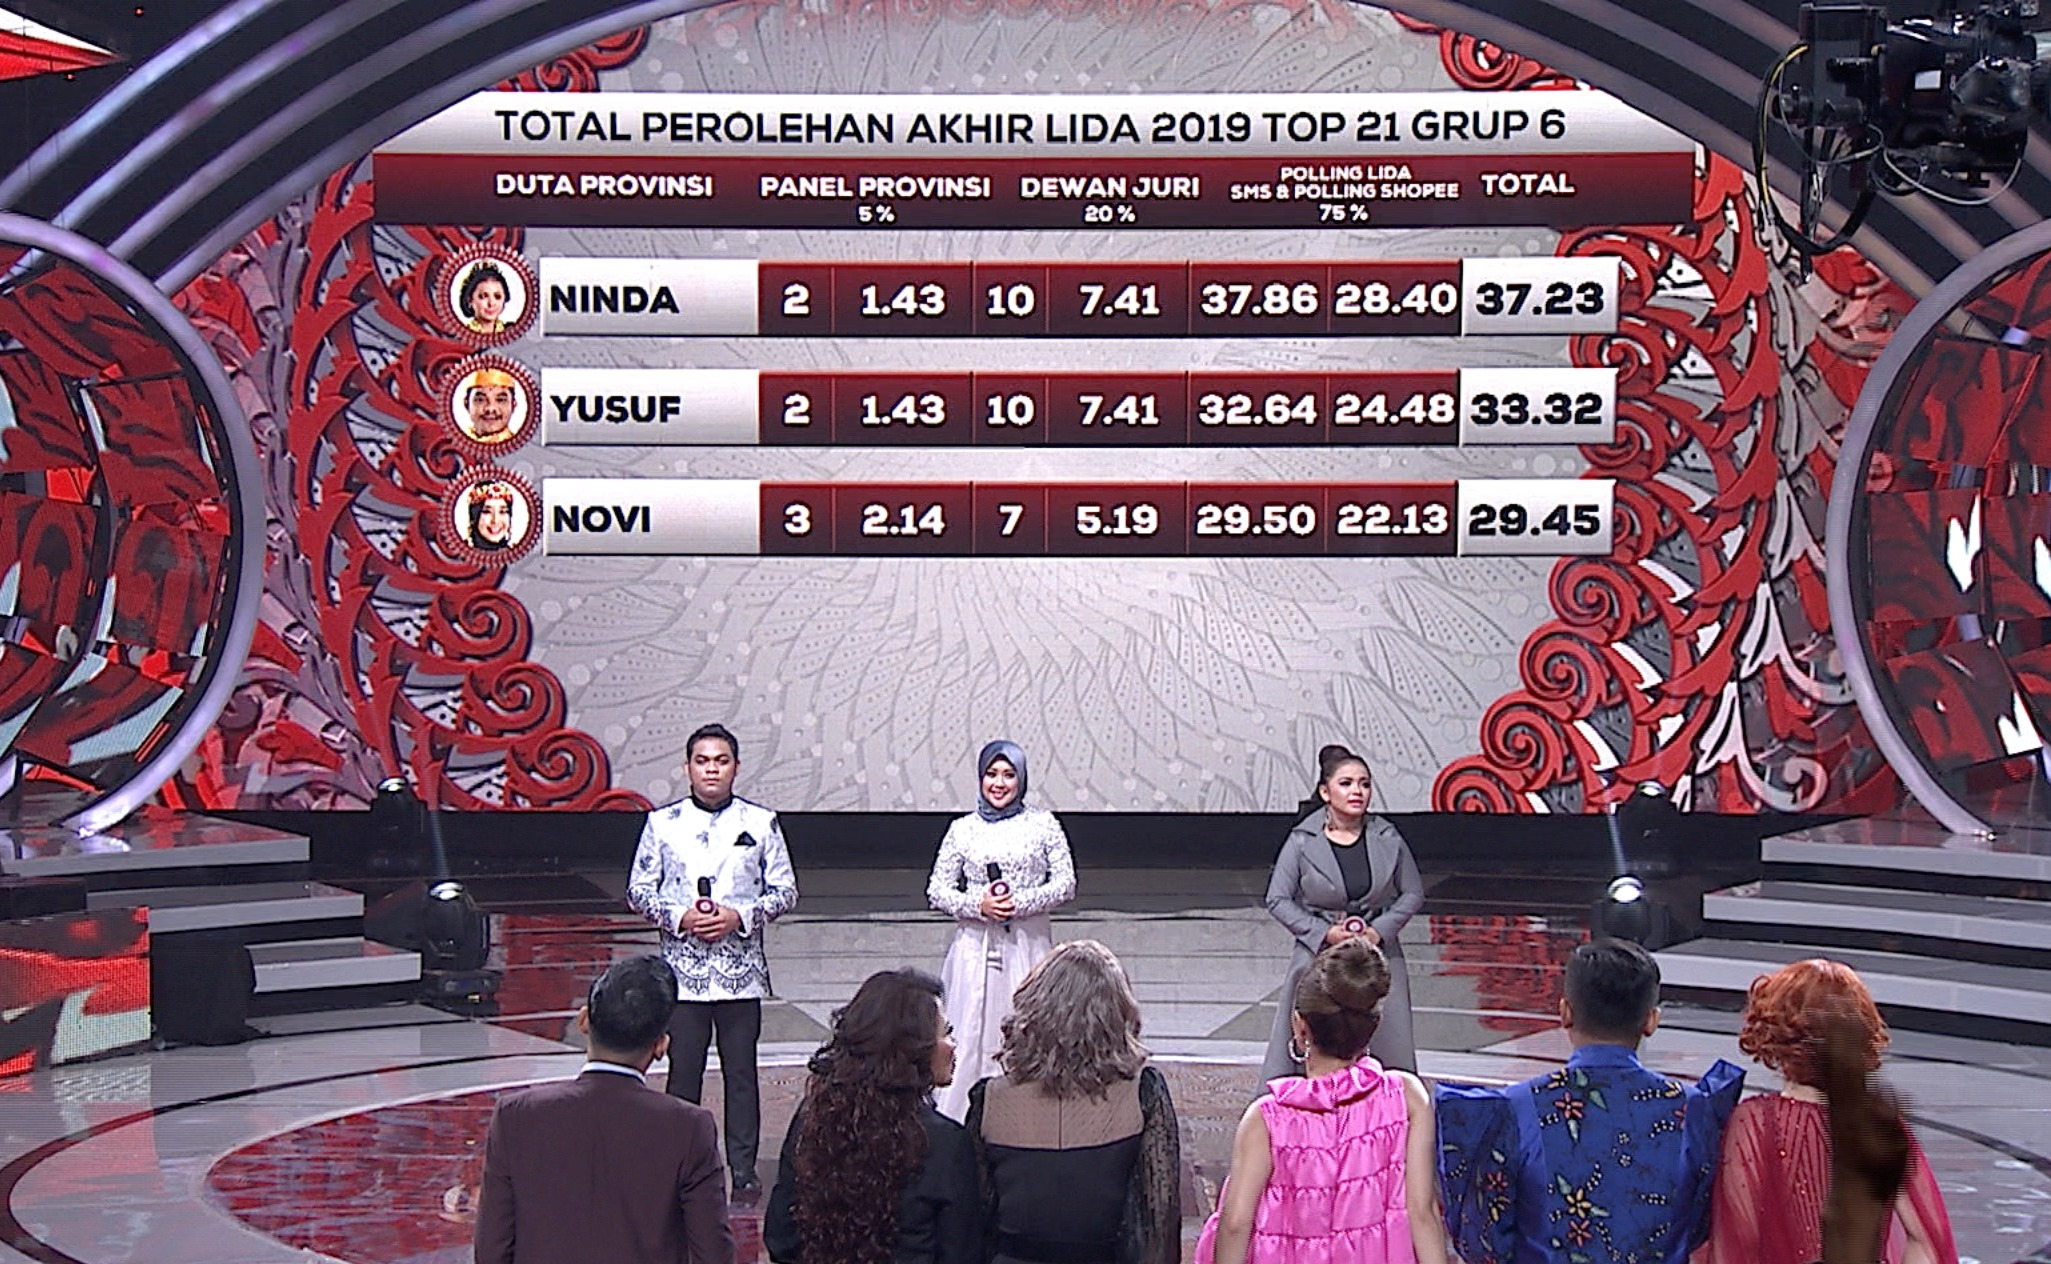 Total Perolehan Akhir LIDA 2019 Top 21 Group 6